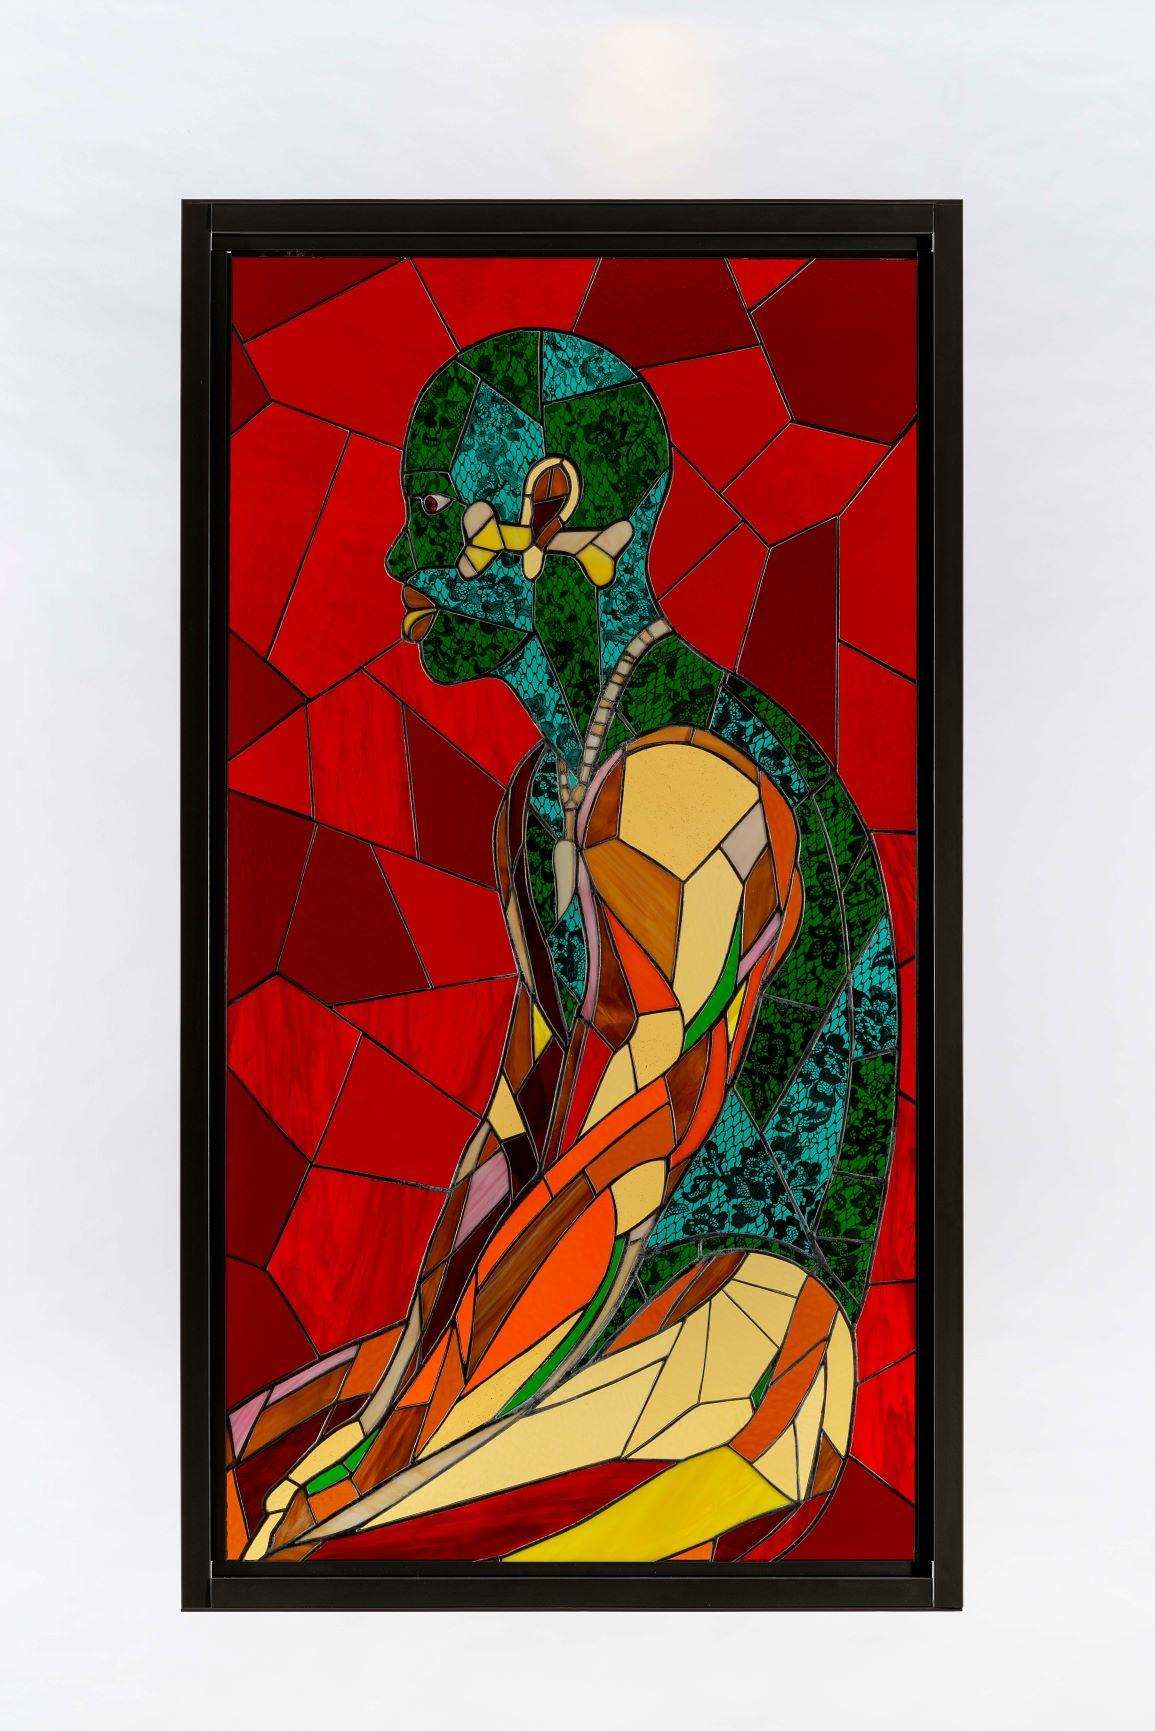 Athi-Patra Ruga, Yellow Bone, 2020. Stained glass, lead, and powder-coated steel Artwork size: 170 x 90 cm. Framed size: 180 x 100 x 4 cm © Credit Photo Matthew Bradley.  Courtesy of WHATIFTHEWORLD Gallery